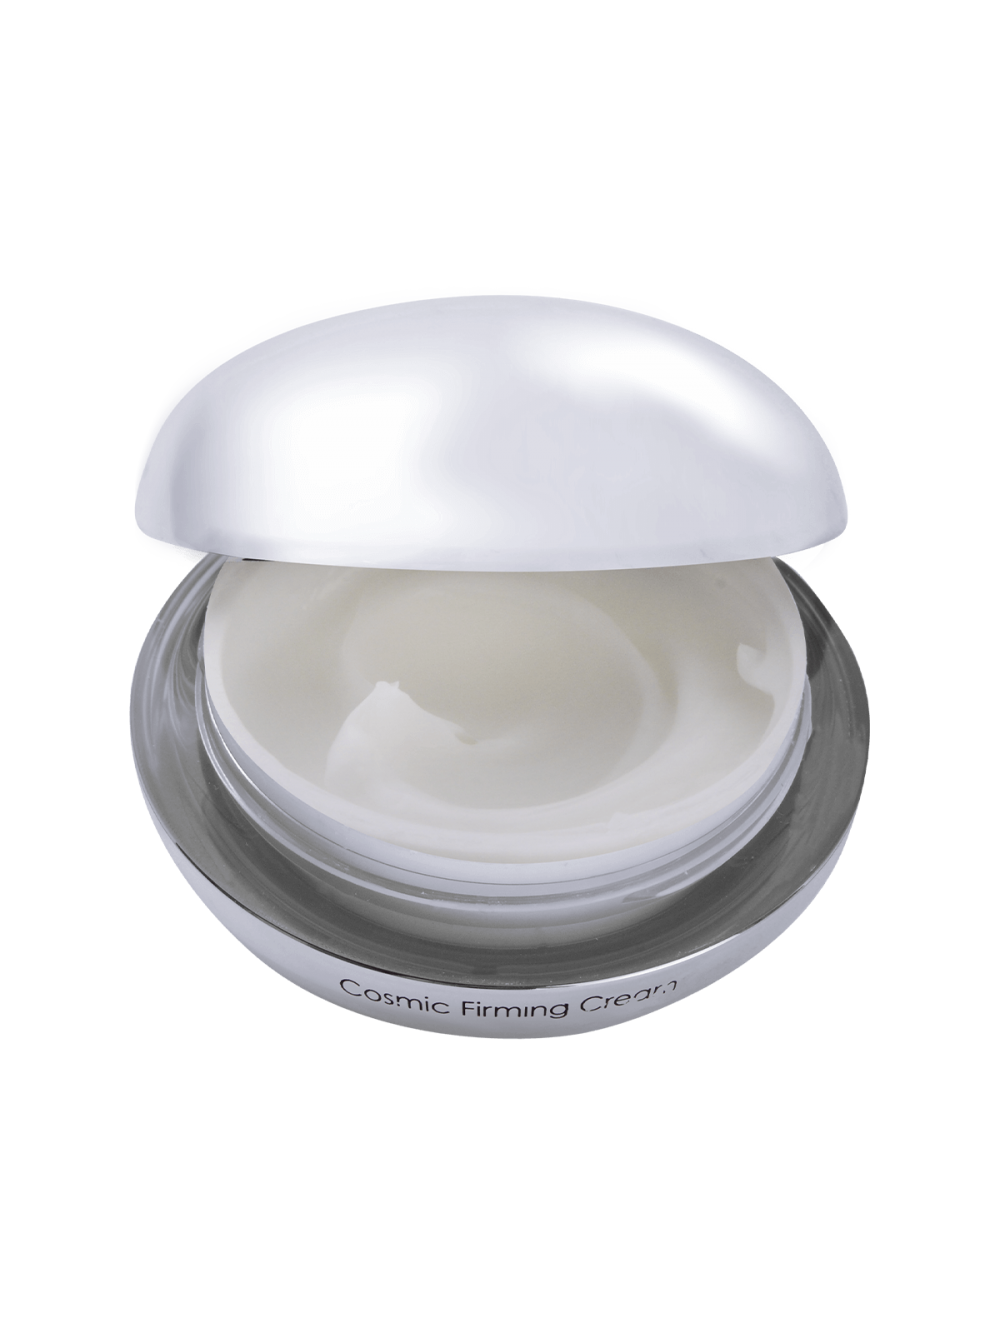 Cosmic Firming Cream with removed lid